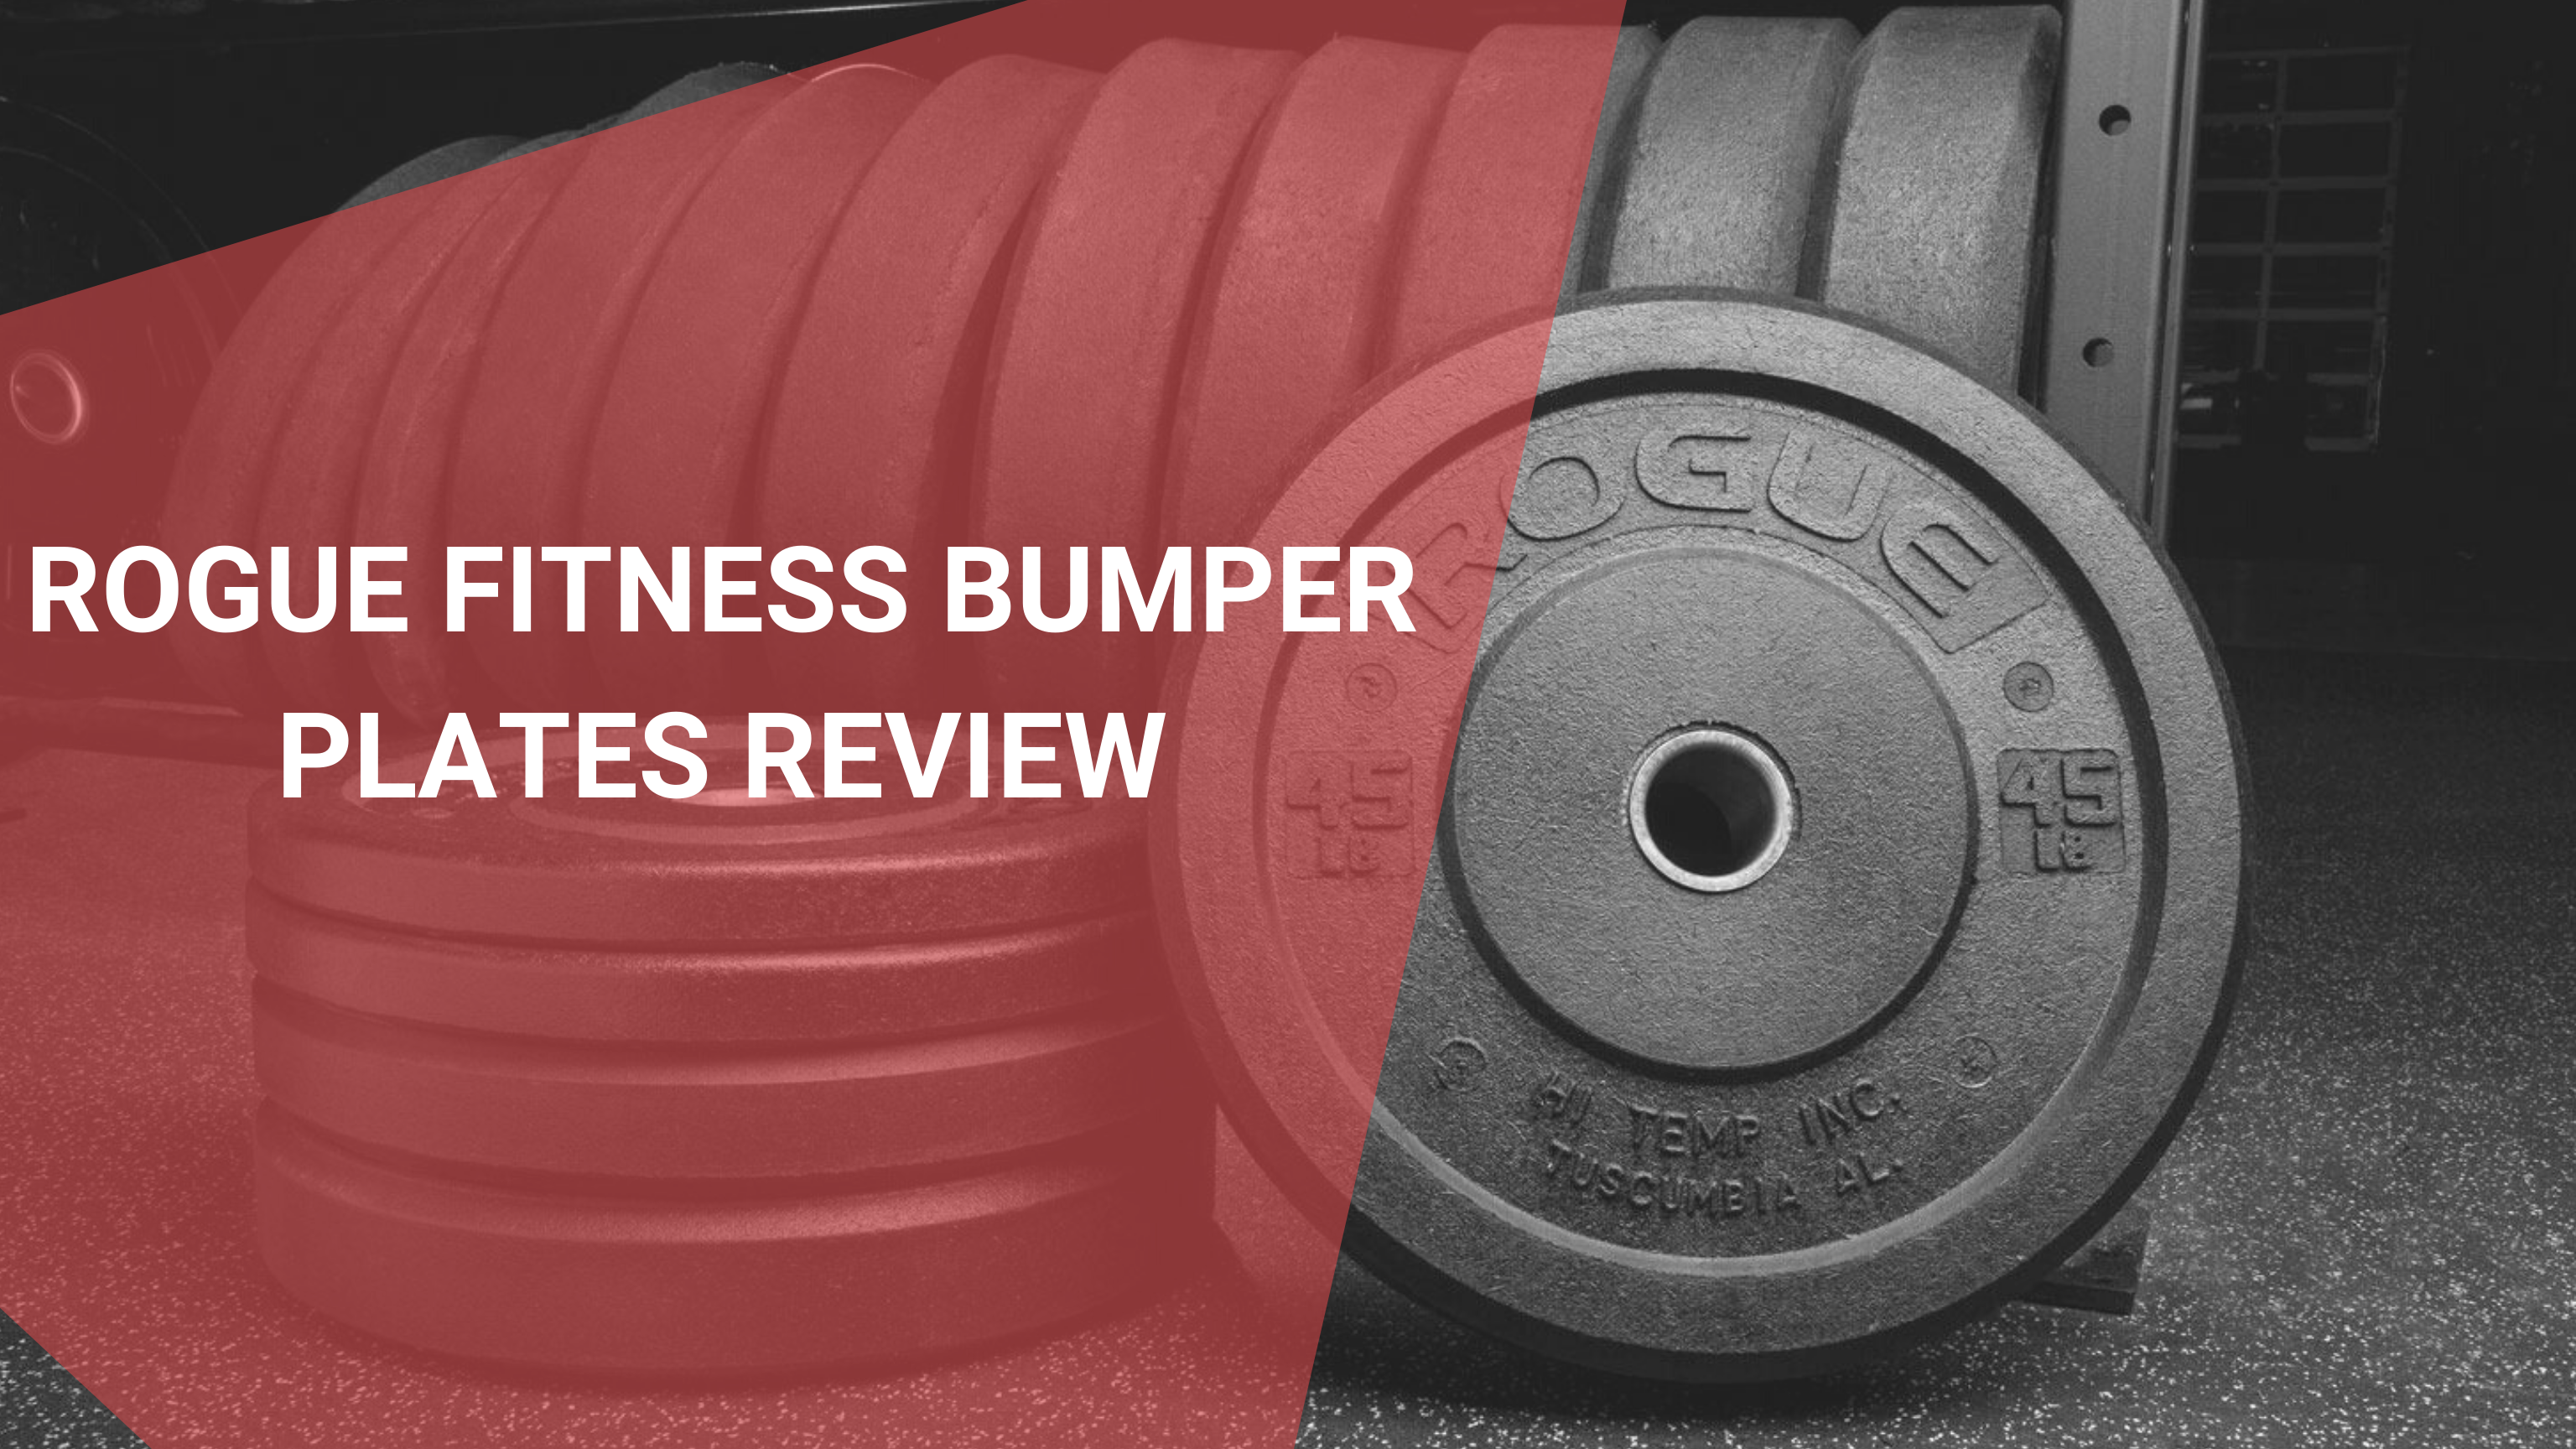 ROGUE FITNESS BUMPER PLATES REVIEW